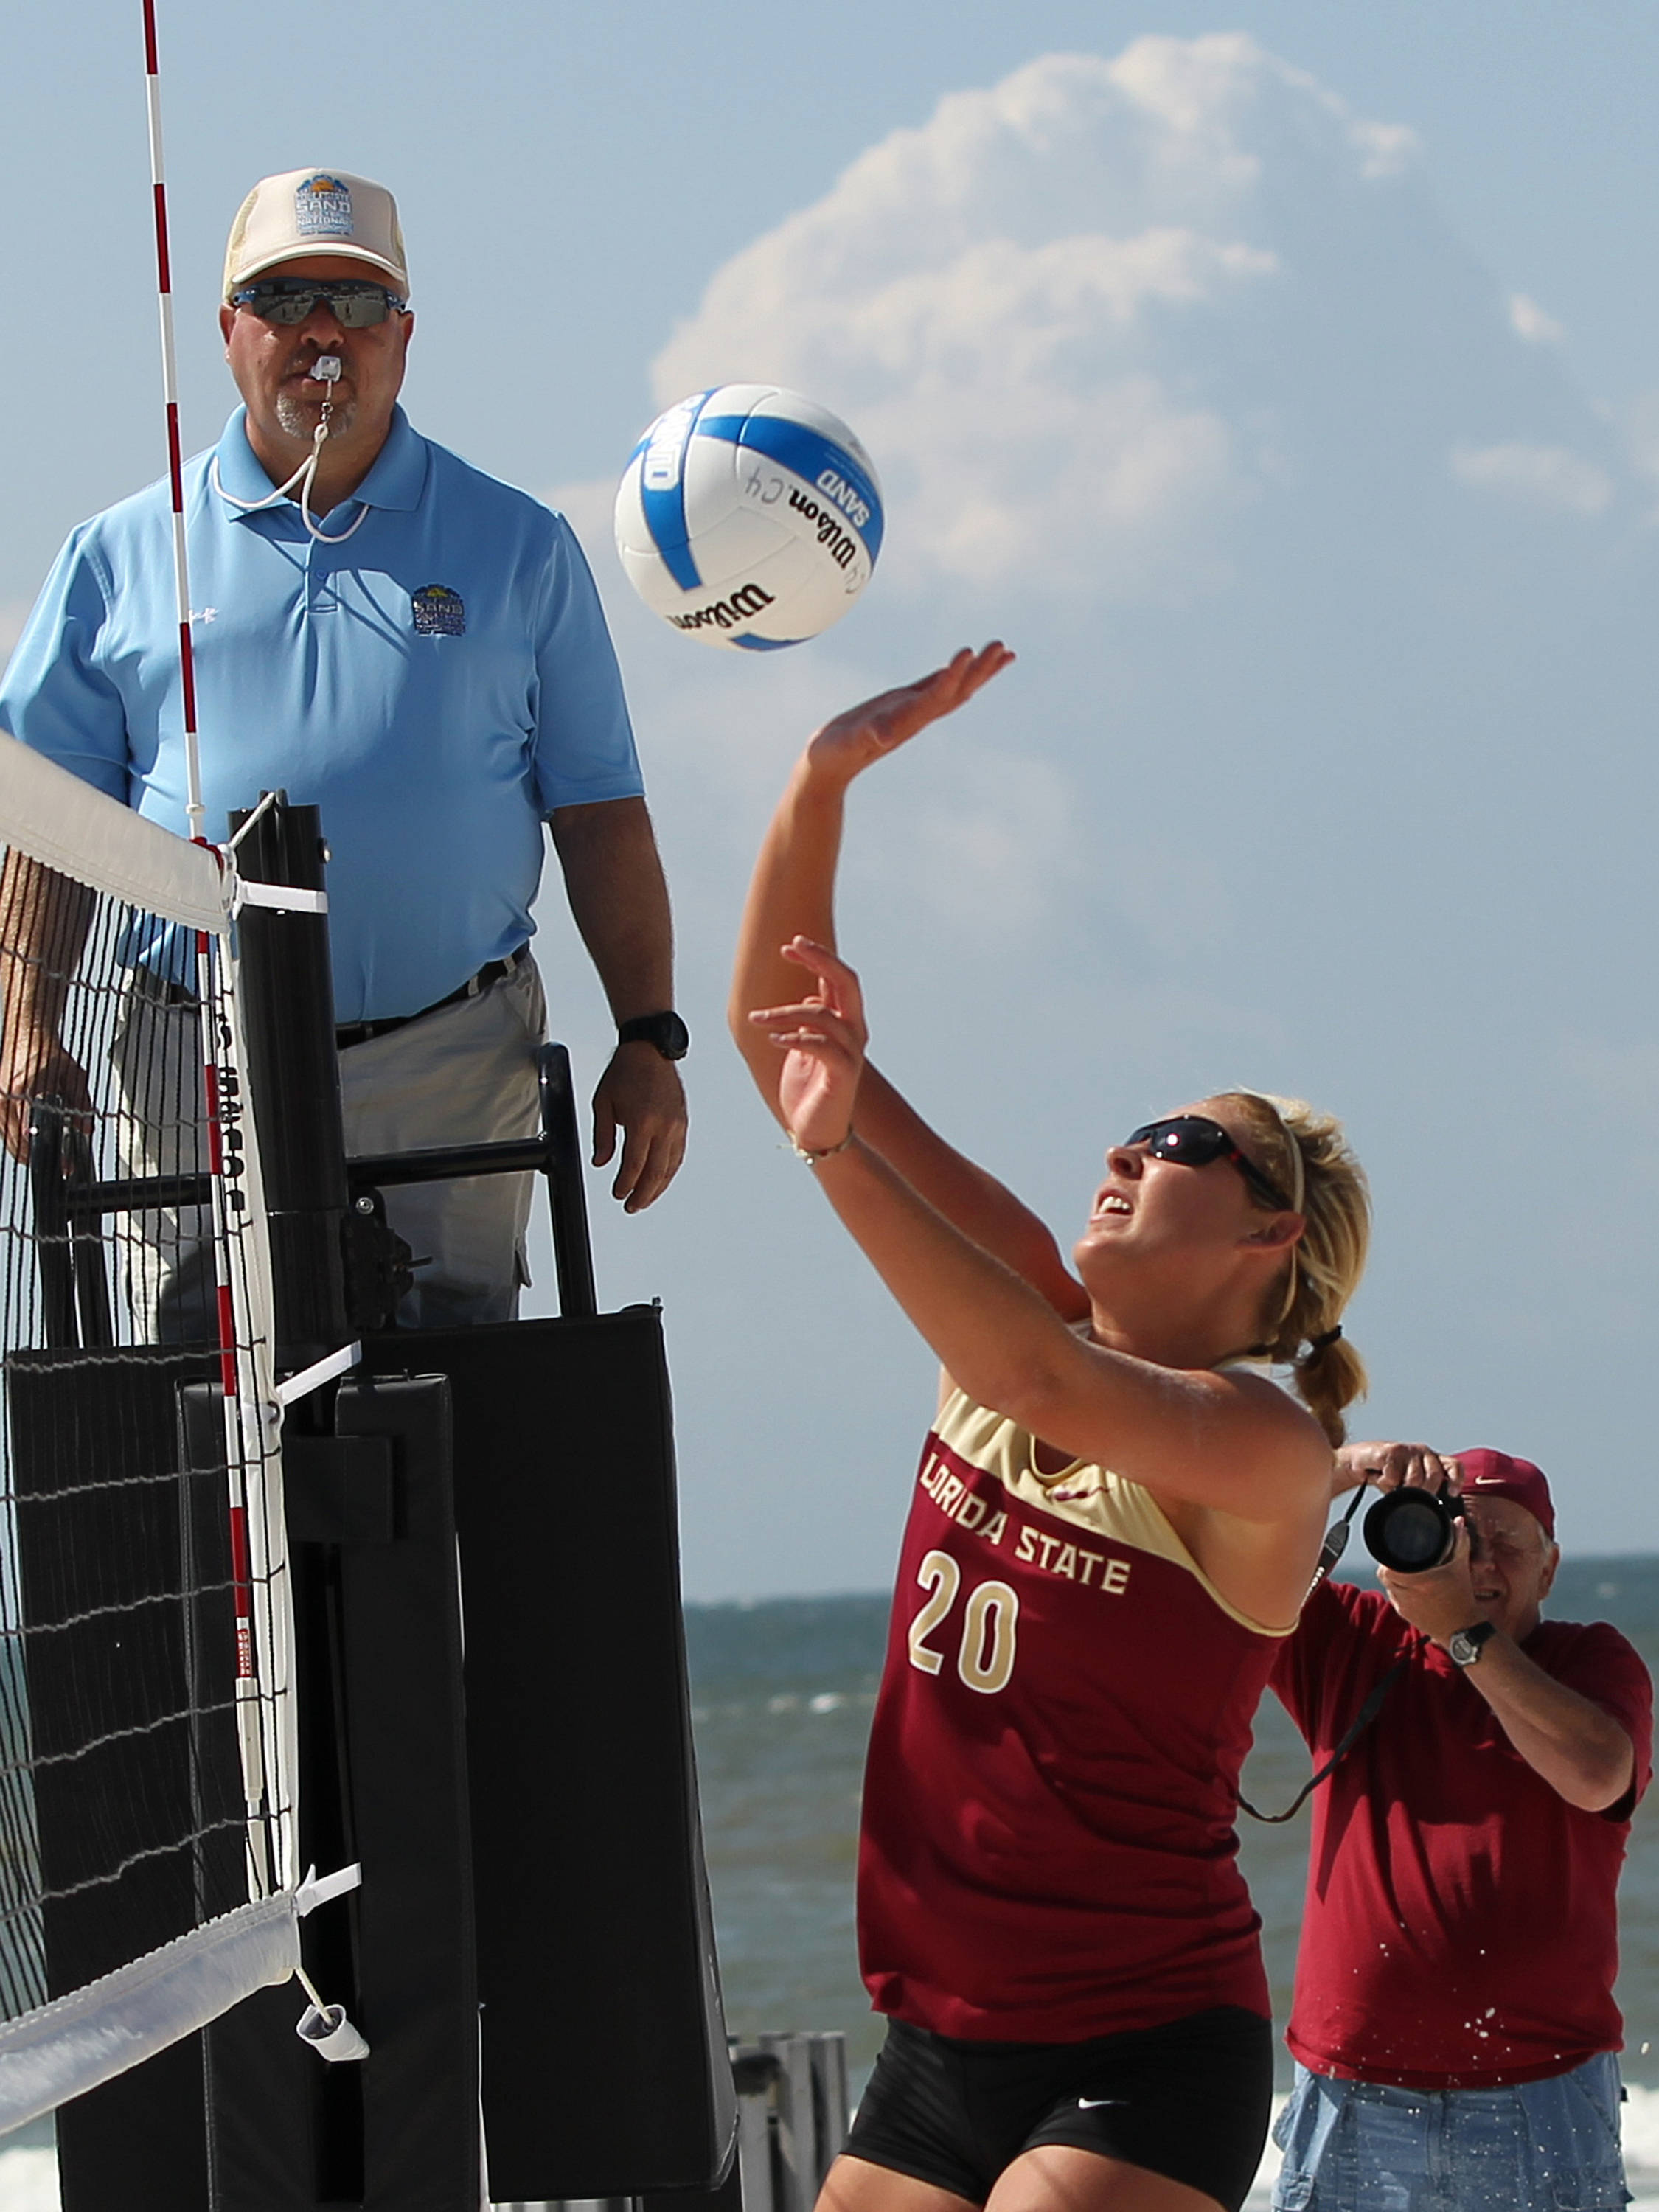 Sarah Wickstrom, AVCA Collegiate Sand Volleyball National  Championships - Pairs,  Gulf Shores, Alabama, 05/05/13 . (Photo by Steve Musco)